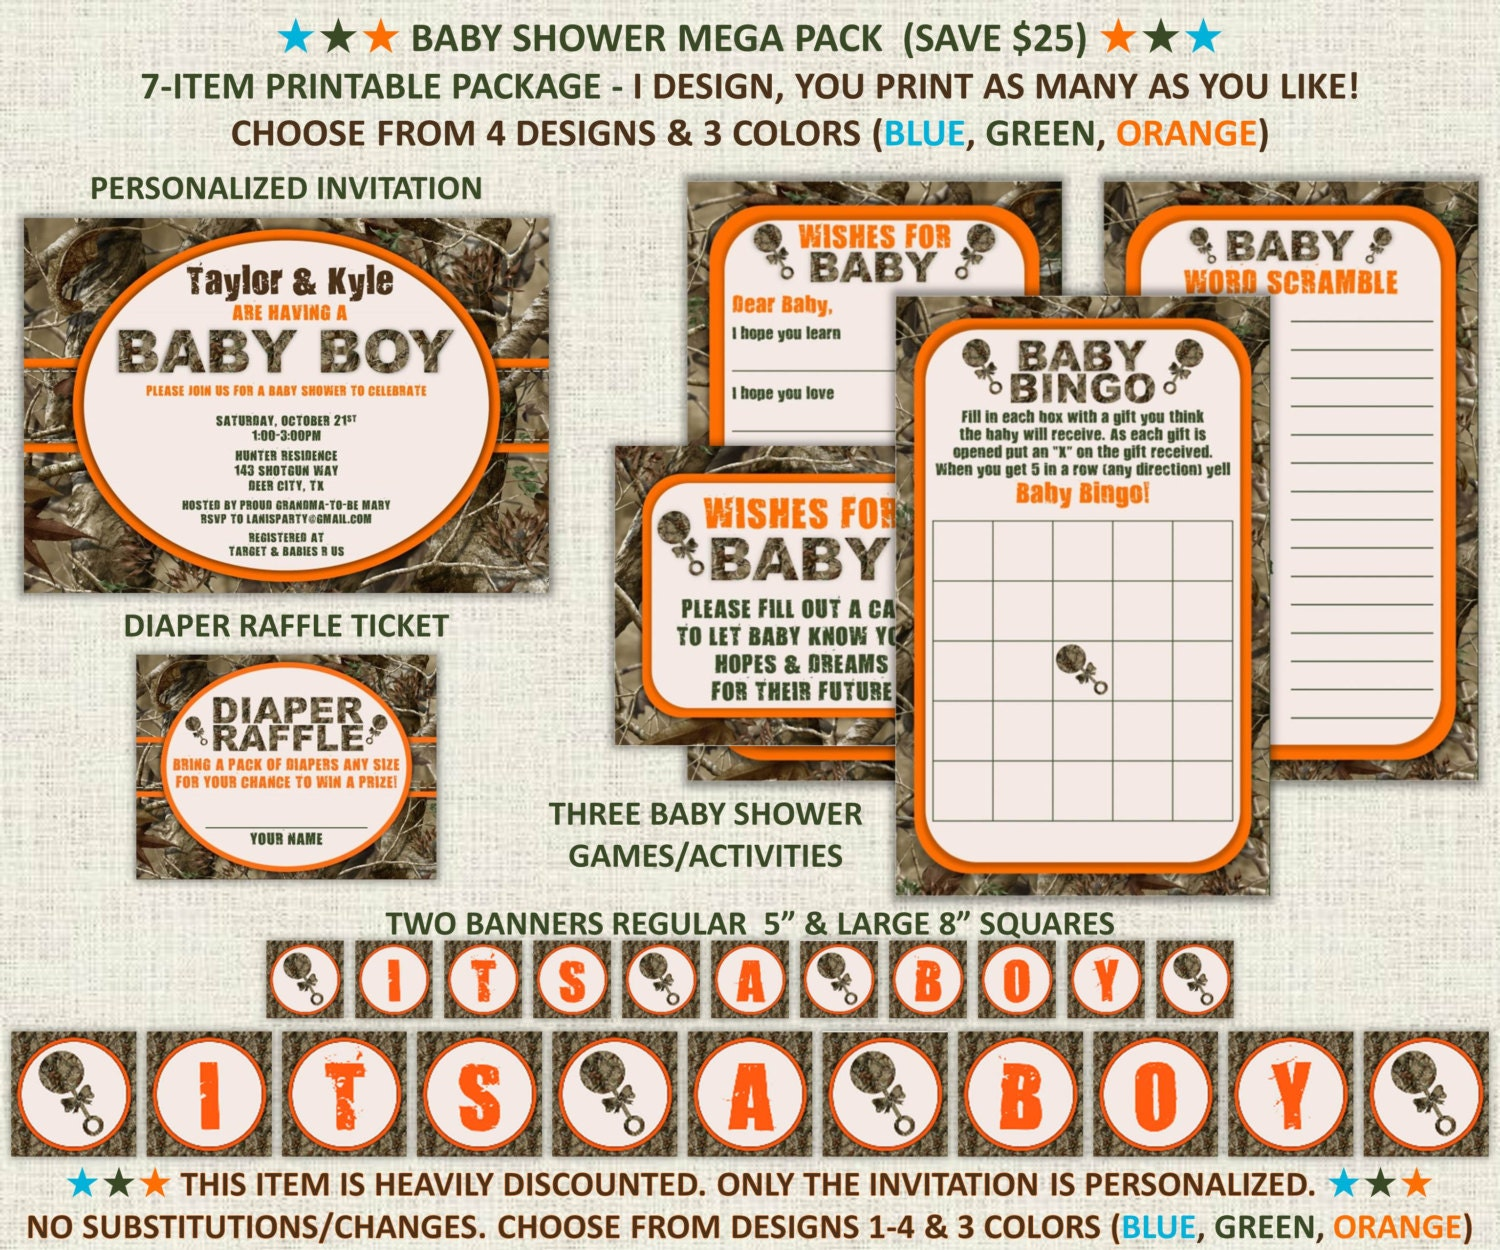 camo baby boy shower invitation package mega pack 7 item